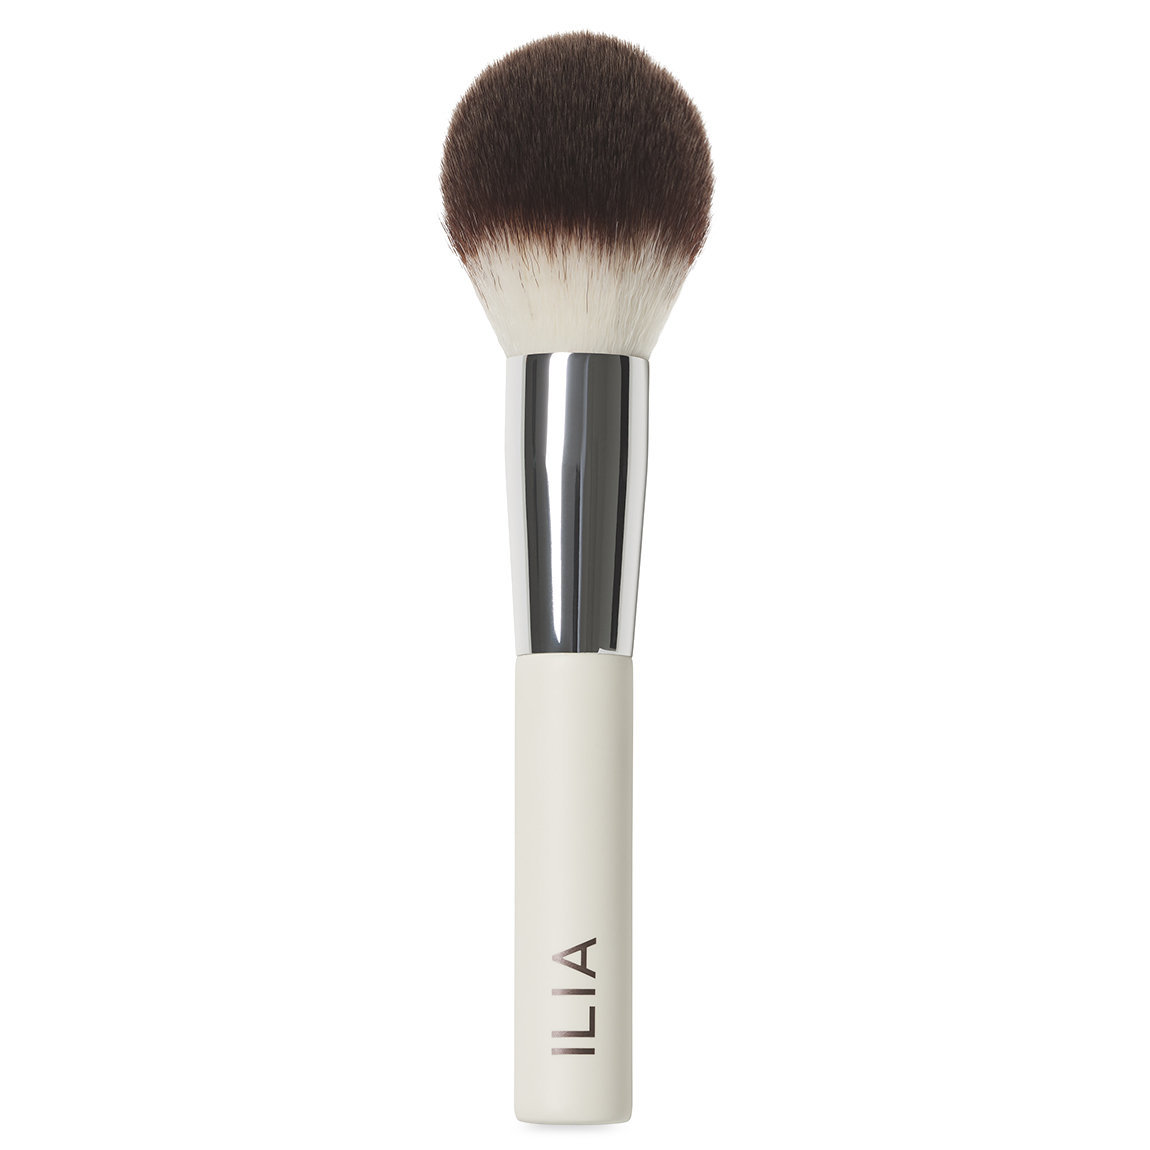 ILIA Finishing Powder Brush alternative view 1 - product swatch.